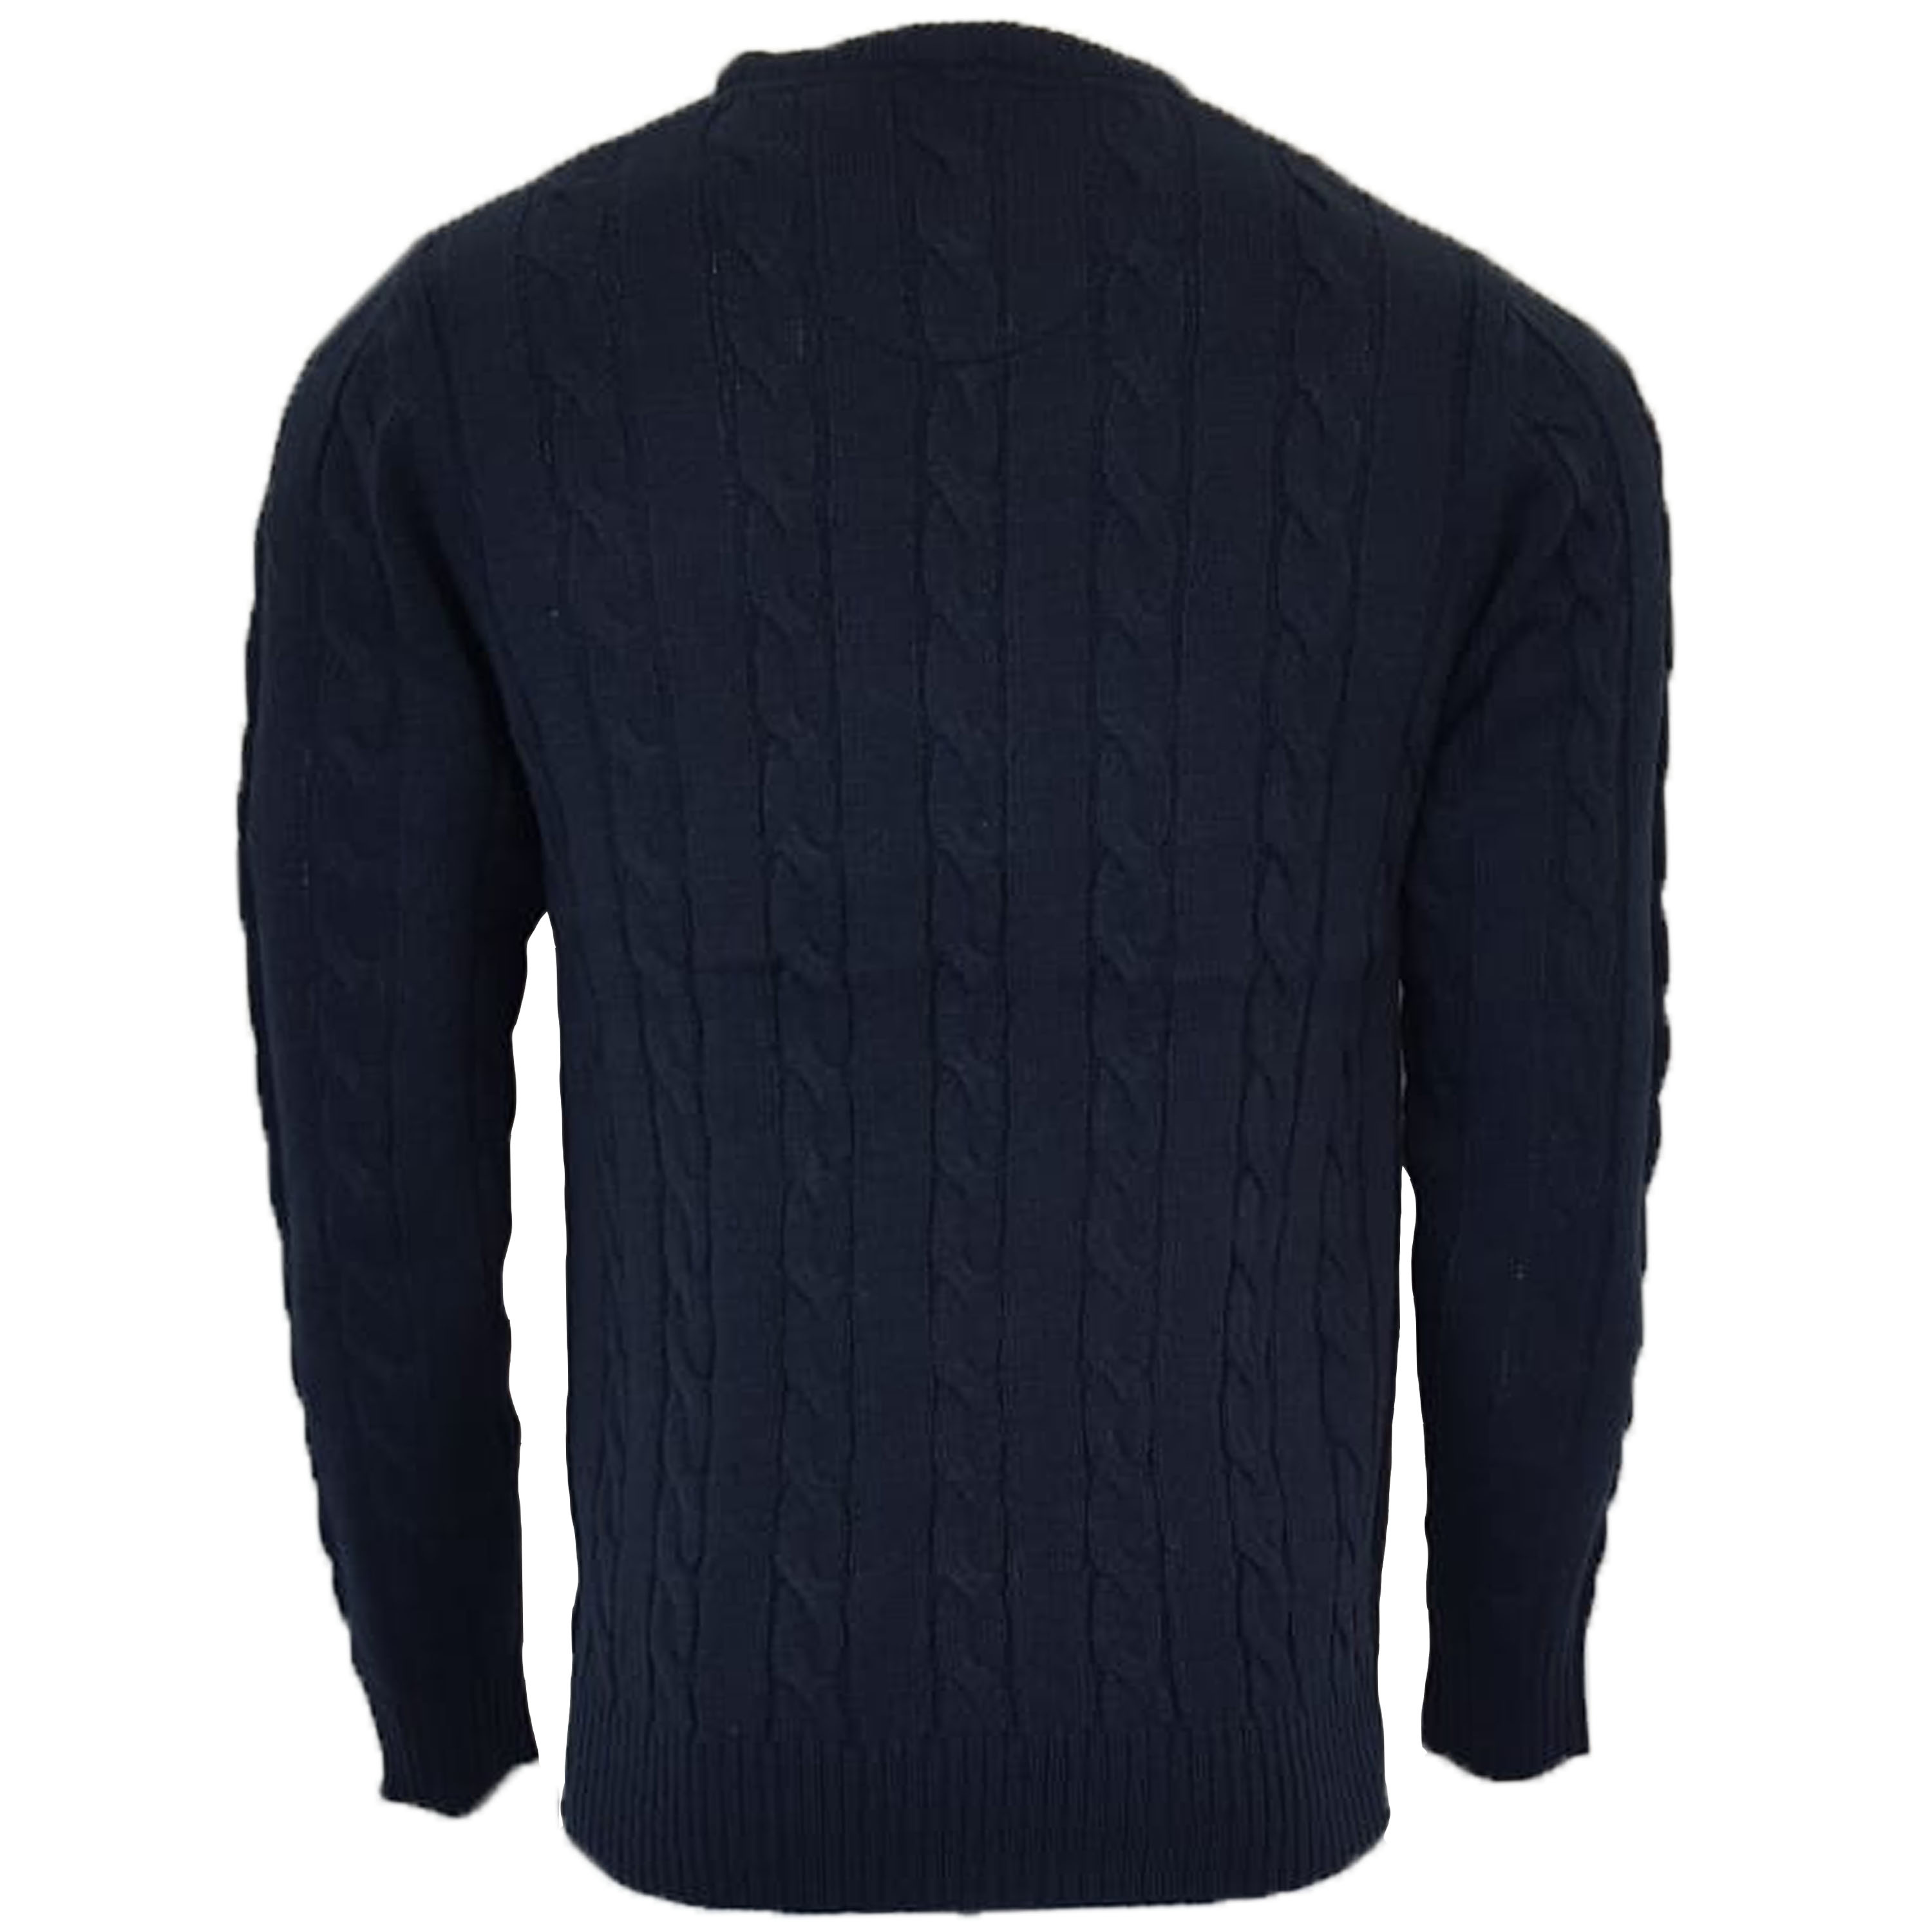 Mens-Jumper-Brave-Soul-Knitted-Sweater-Pullover-GOODWIN-Crew-Neck-Top-Winter-New thumbnail 12